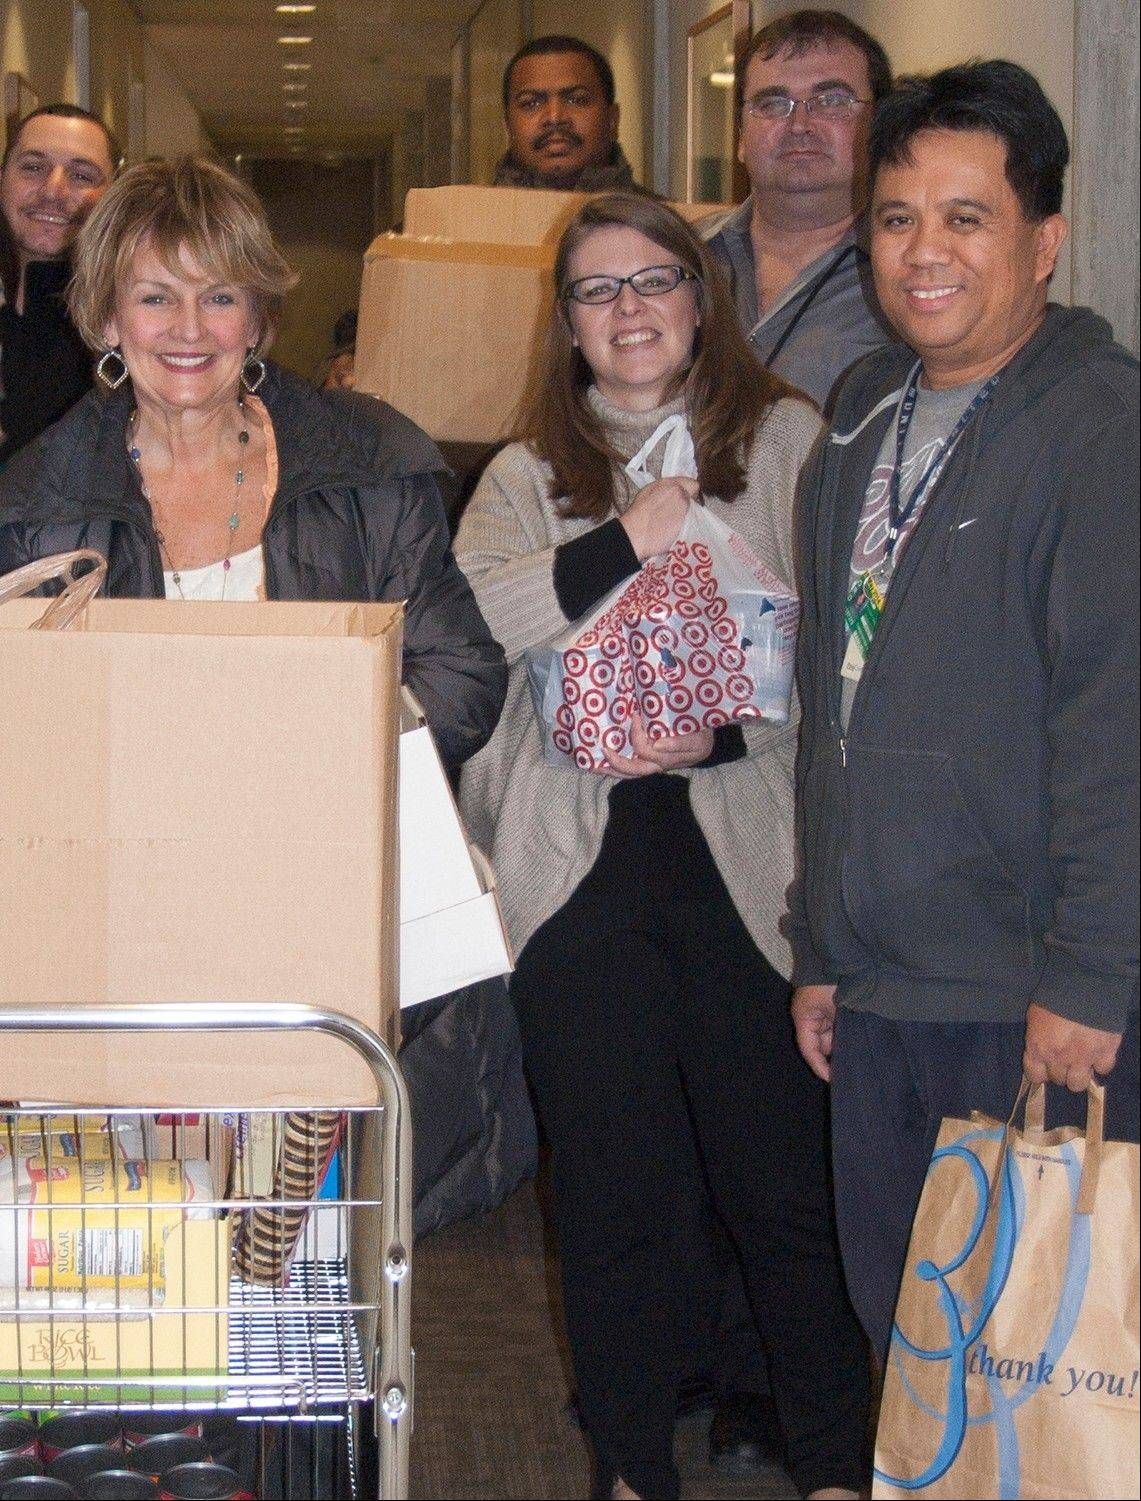 Employees at Alliant Credit Union are pictured with some of the hundreds of food and household items collected for Maine Township Community Food Pantry. Left to right are: Mark Wooster; Colleen Panzino, food drive coordinator; Martin Reavis; Samantha Warber; Stefan Ivanov; and Christopher Manuel. The items were donated by Alliant employees during the Chicago-based credit union's Holiday Food Drive. The food pantry serves the needs of people living in several Northwest suburban Chicago communities.